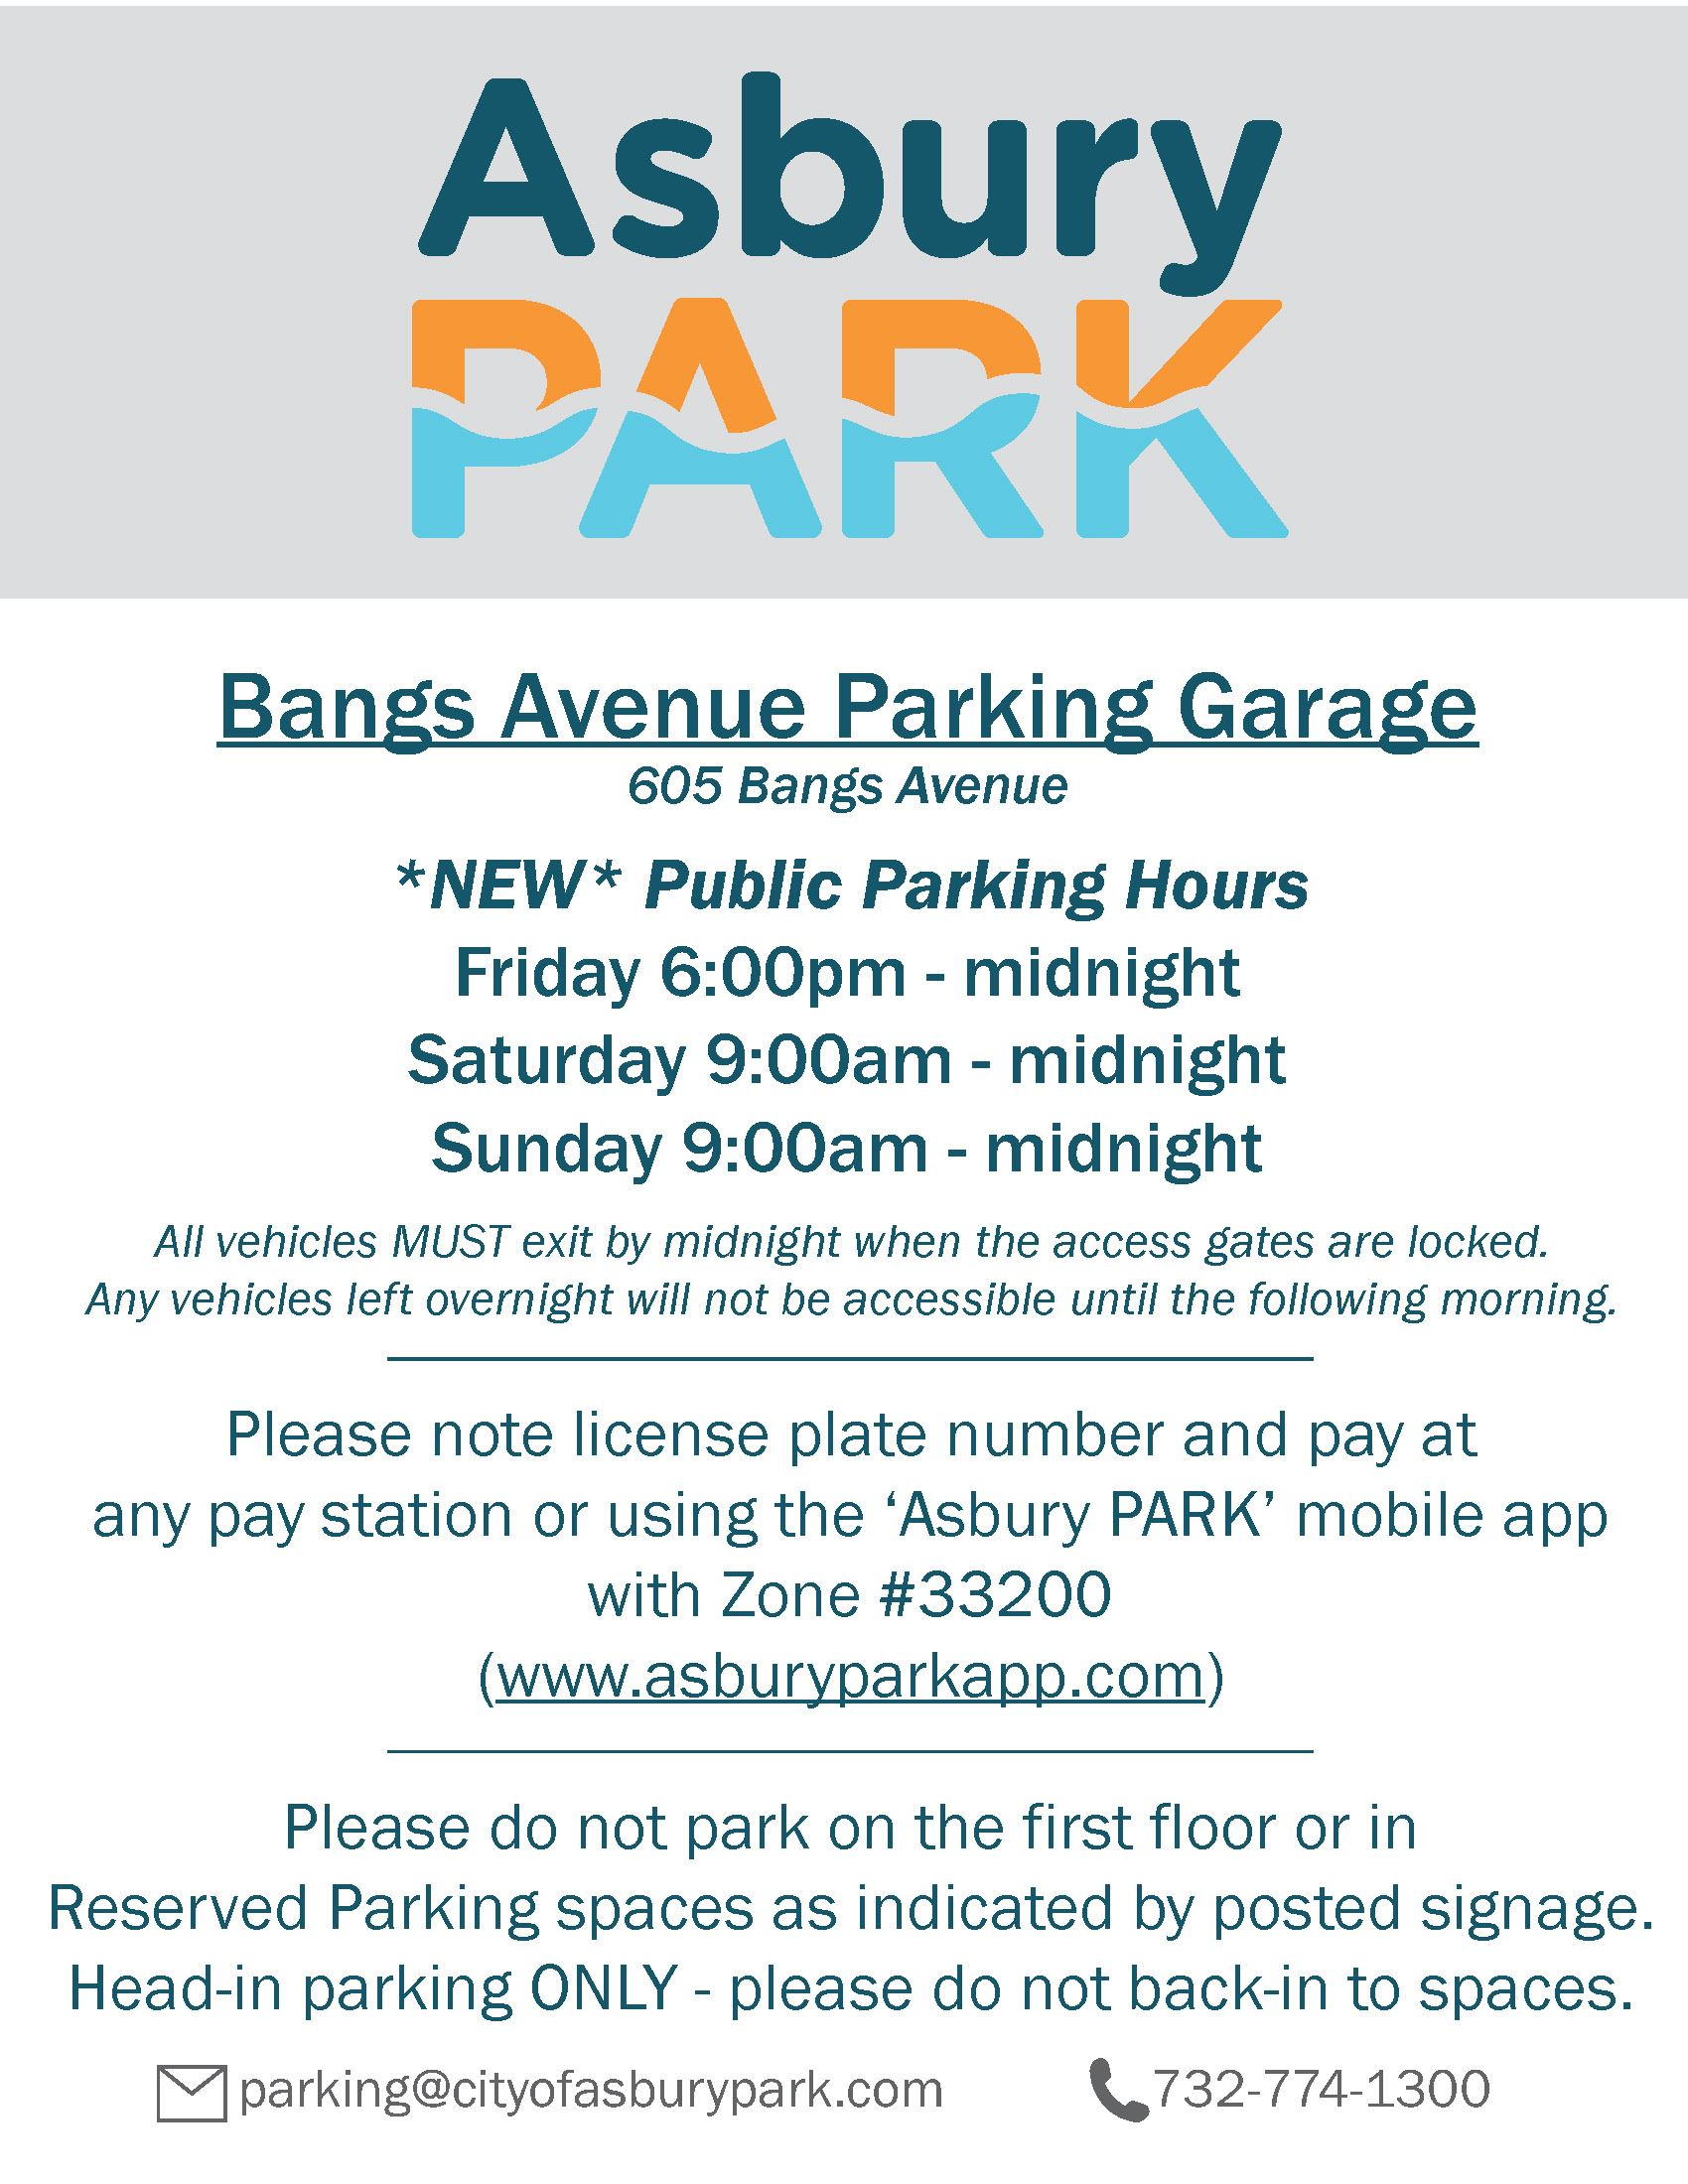 New Bangs Avenue Garage Public Parking Hours